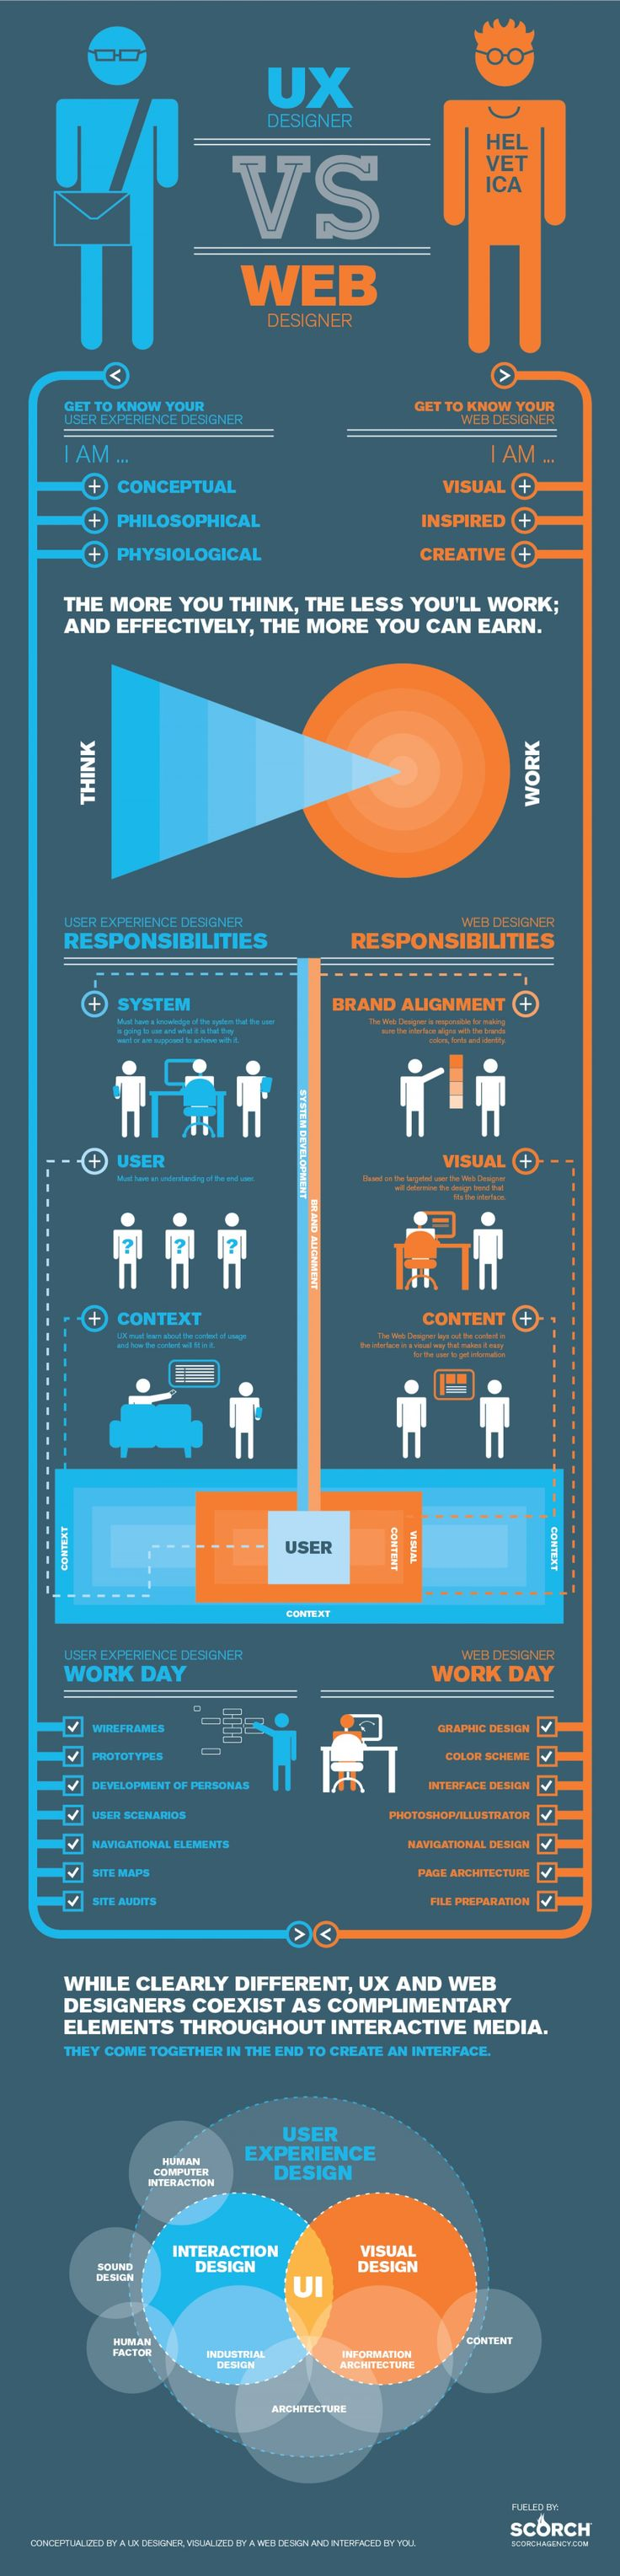 https://social-media-strategy-template.blogspot.com/ UX Designers vs Web Designers - What are some of the basic differences between a UX Designer and a Web Designer.